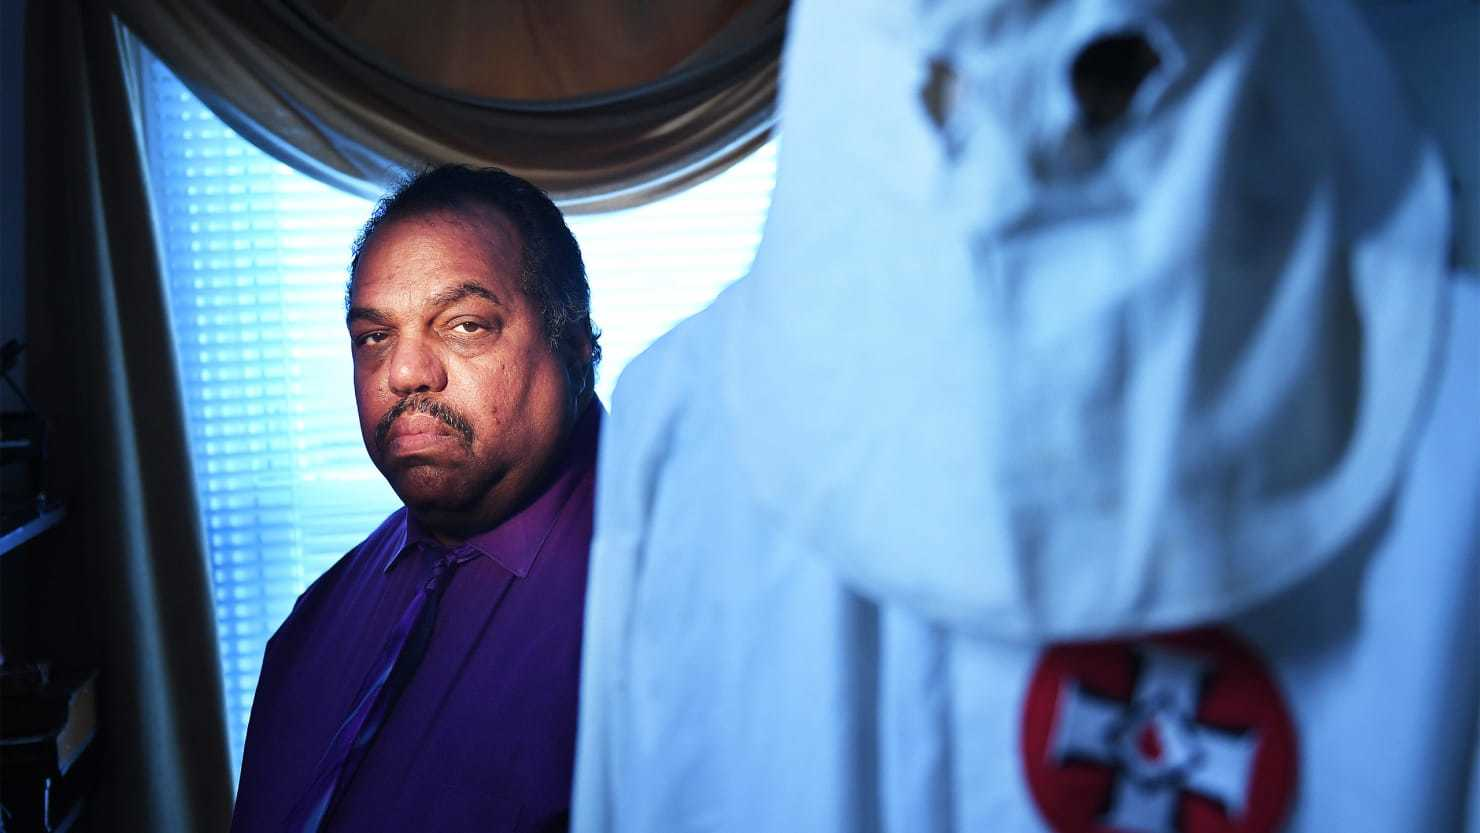 The Curious Case of Daryl Davis, the Black Man Befriending Members of the KKK